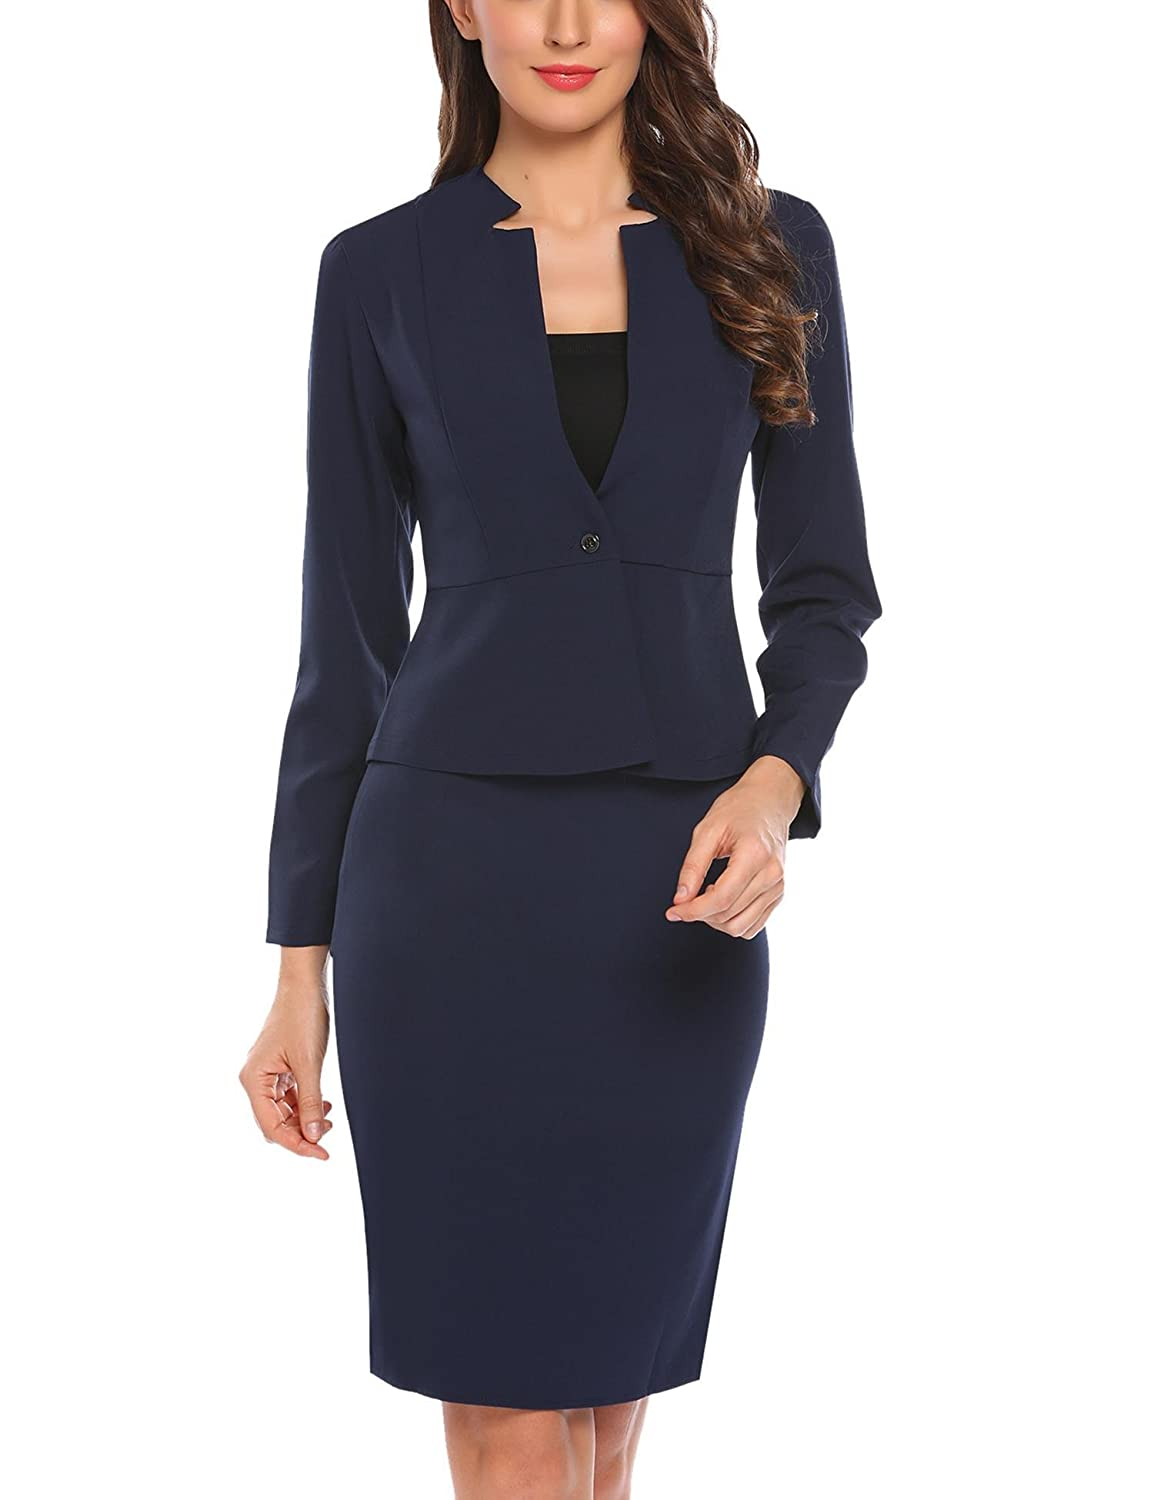 Angvns Women S 2 Piece Long Sleeve Office Lady Blazer And Skirt Suit